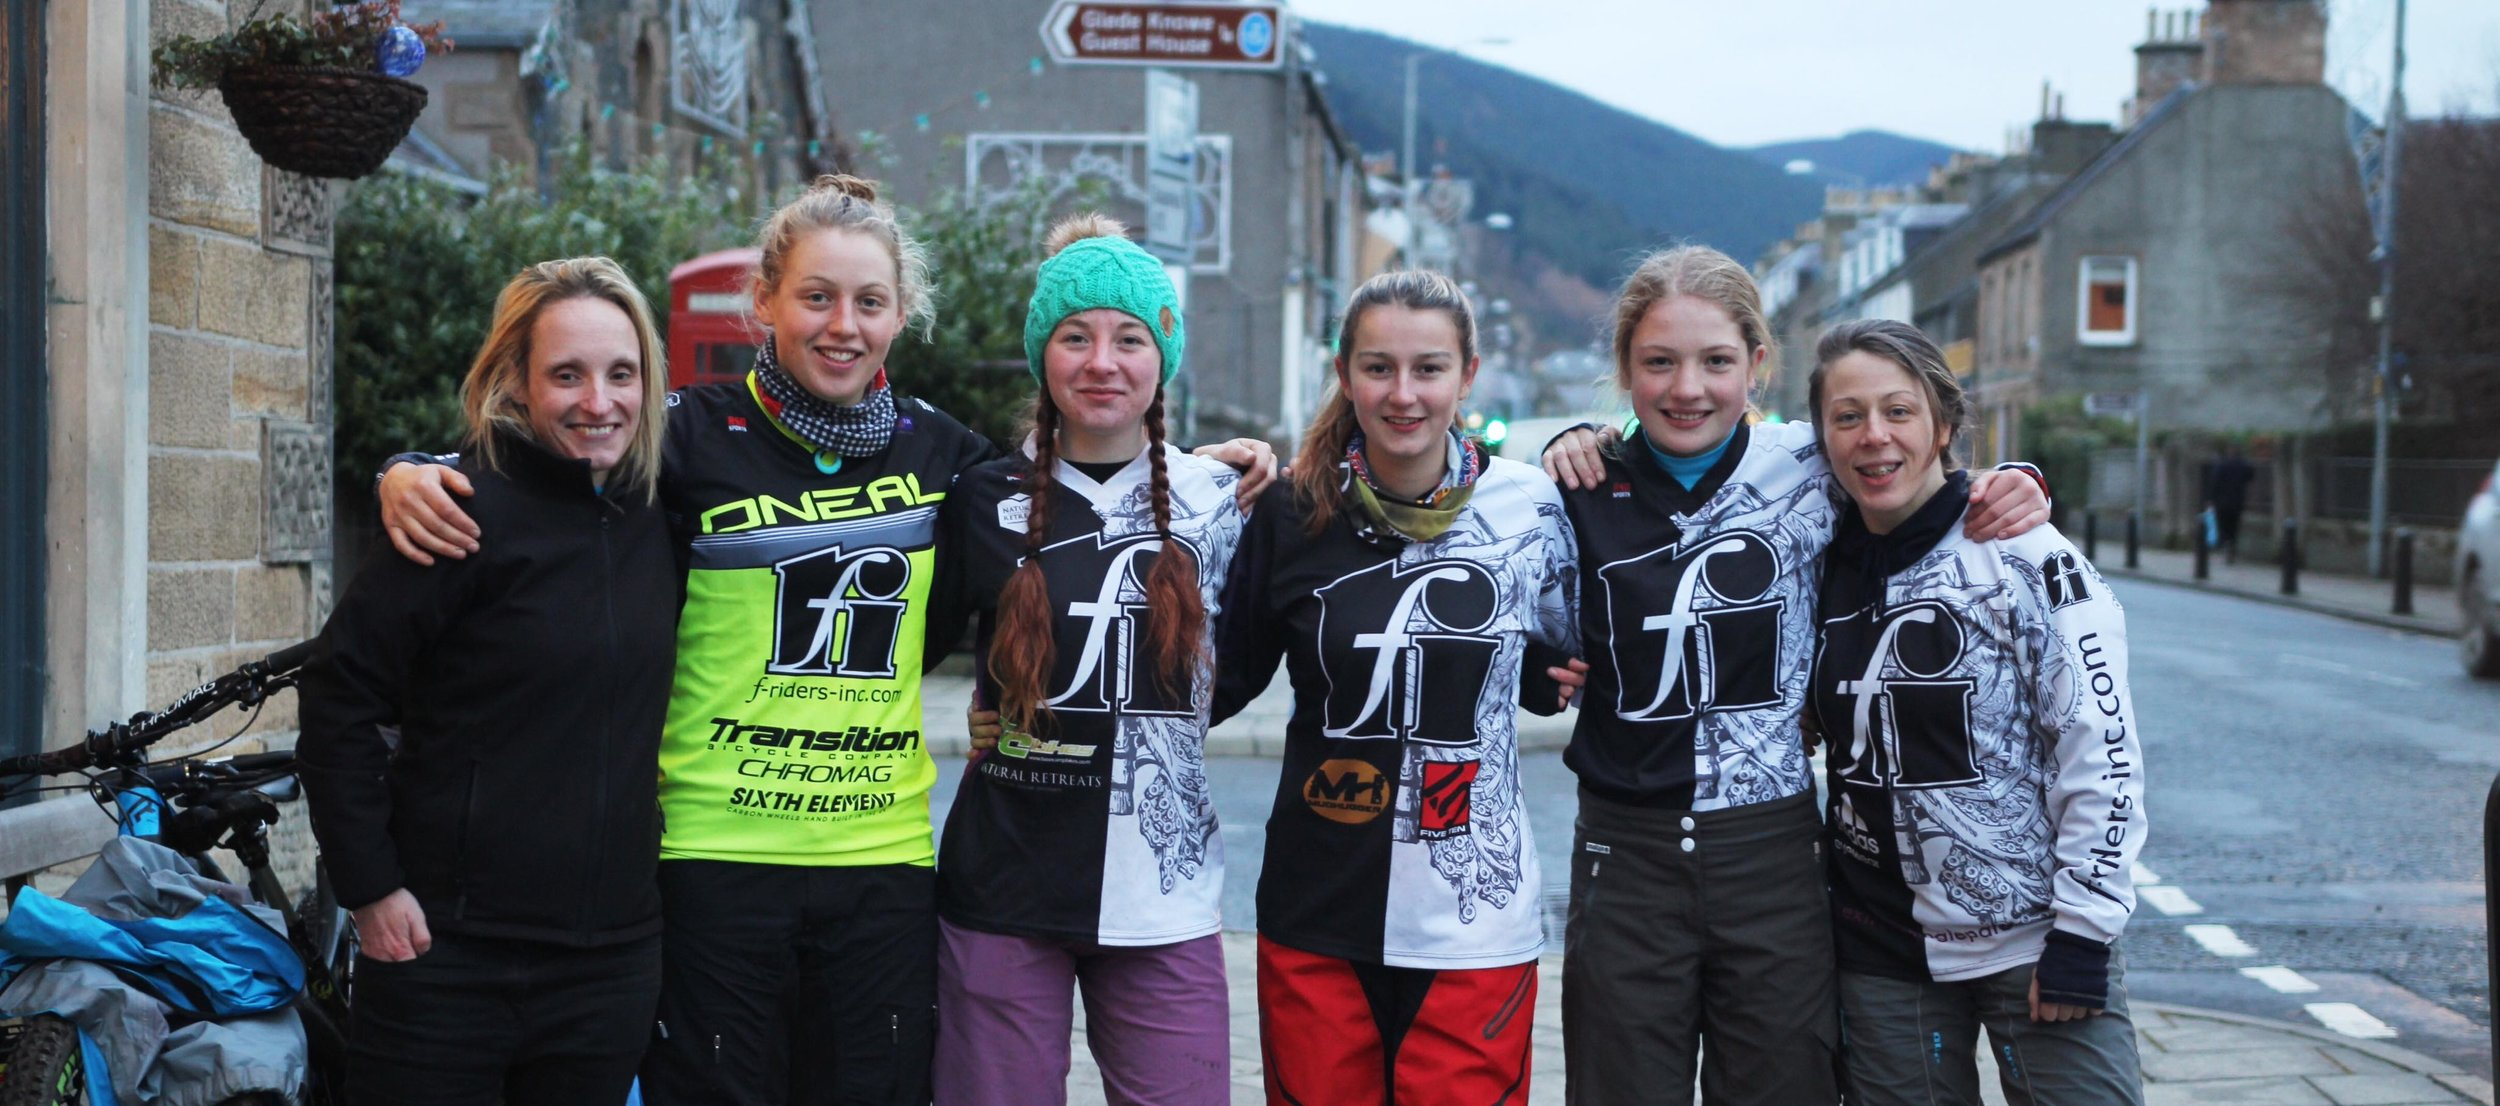 F-Riders All Female Race Team are achieving big things!